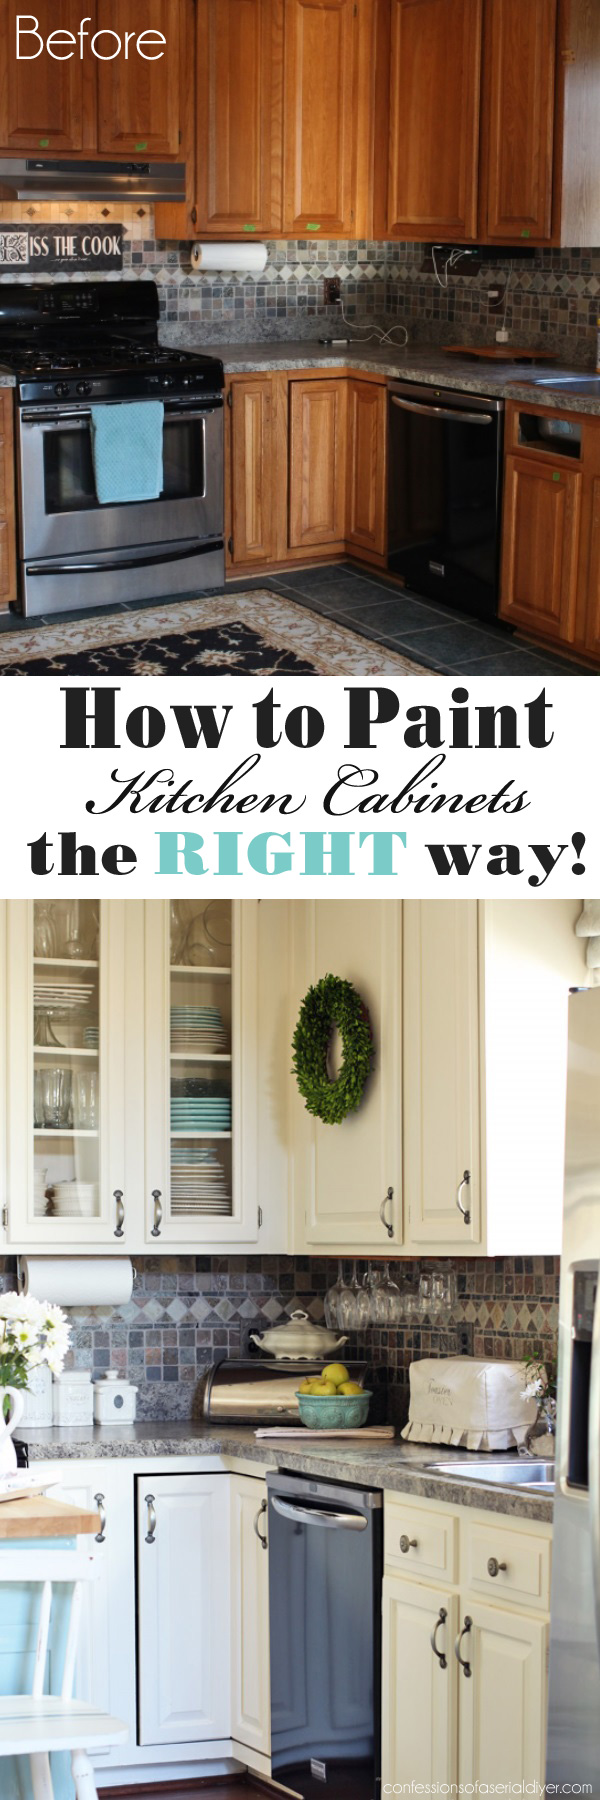 how to paint kitchen cabinets a step by step guide With what kind of paint to use on kitchen cabinets for huge wall art canvas